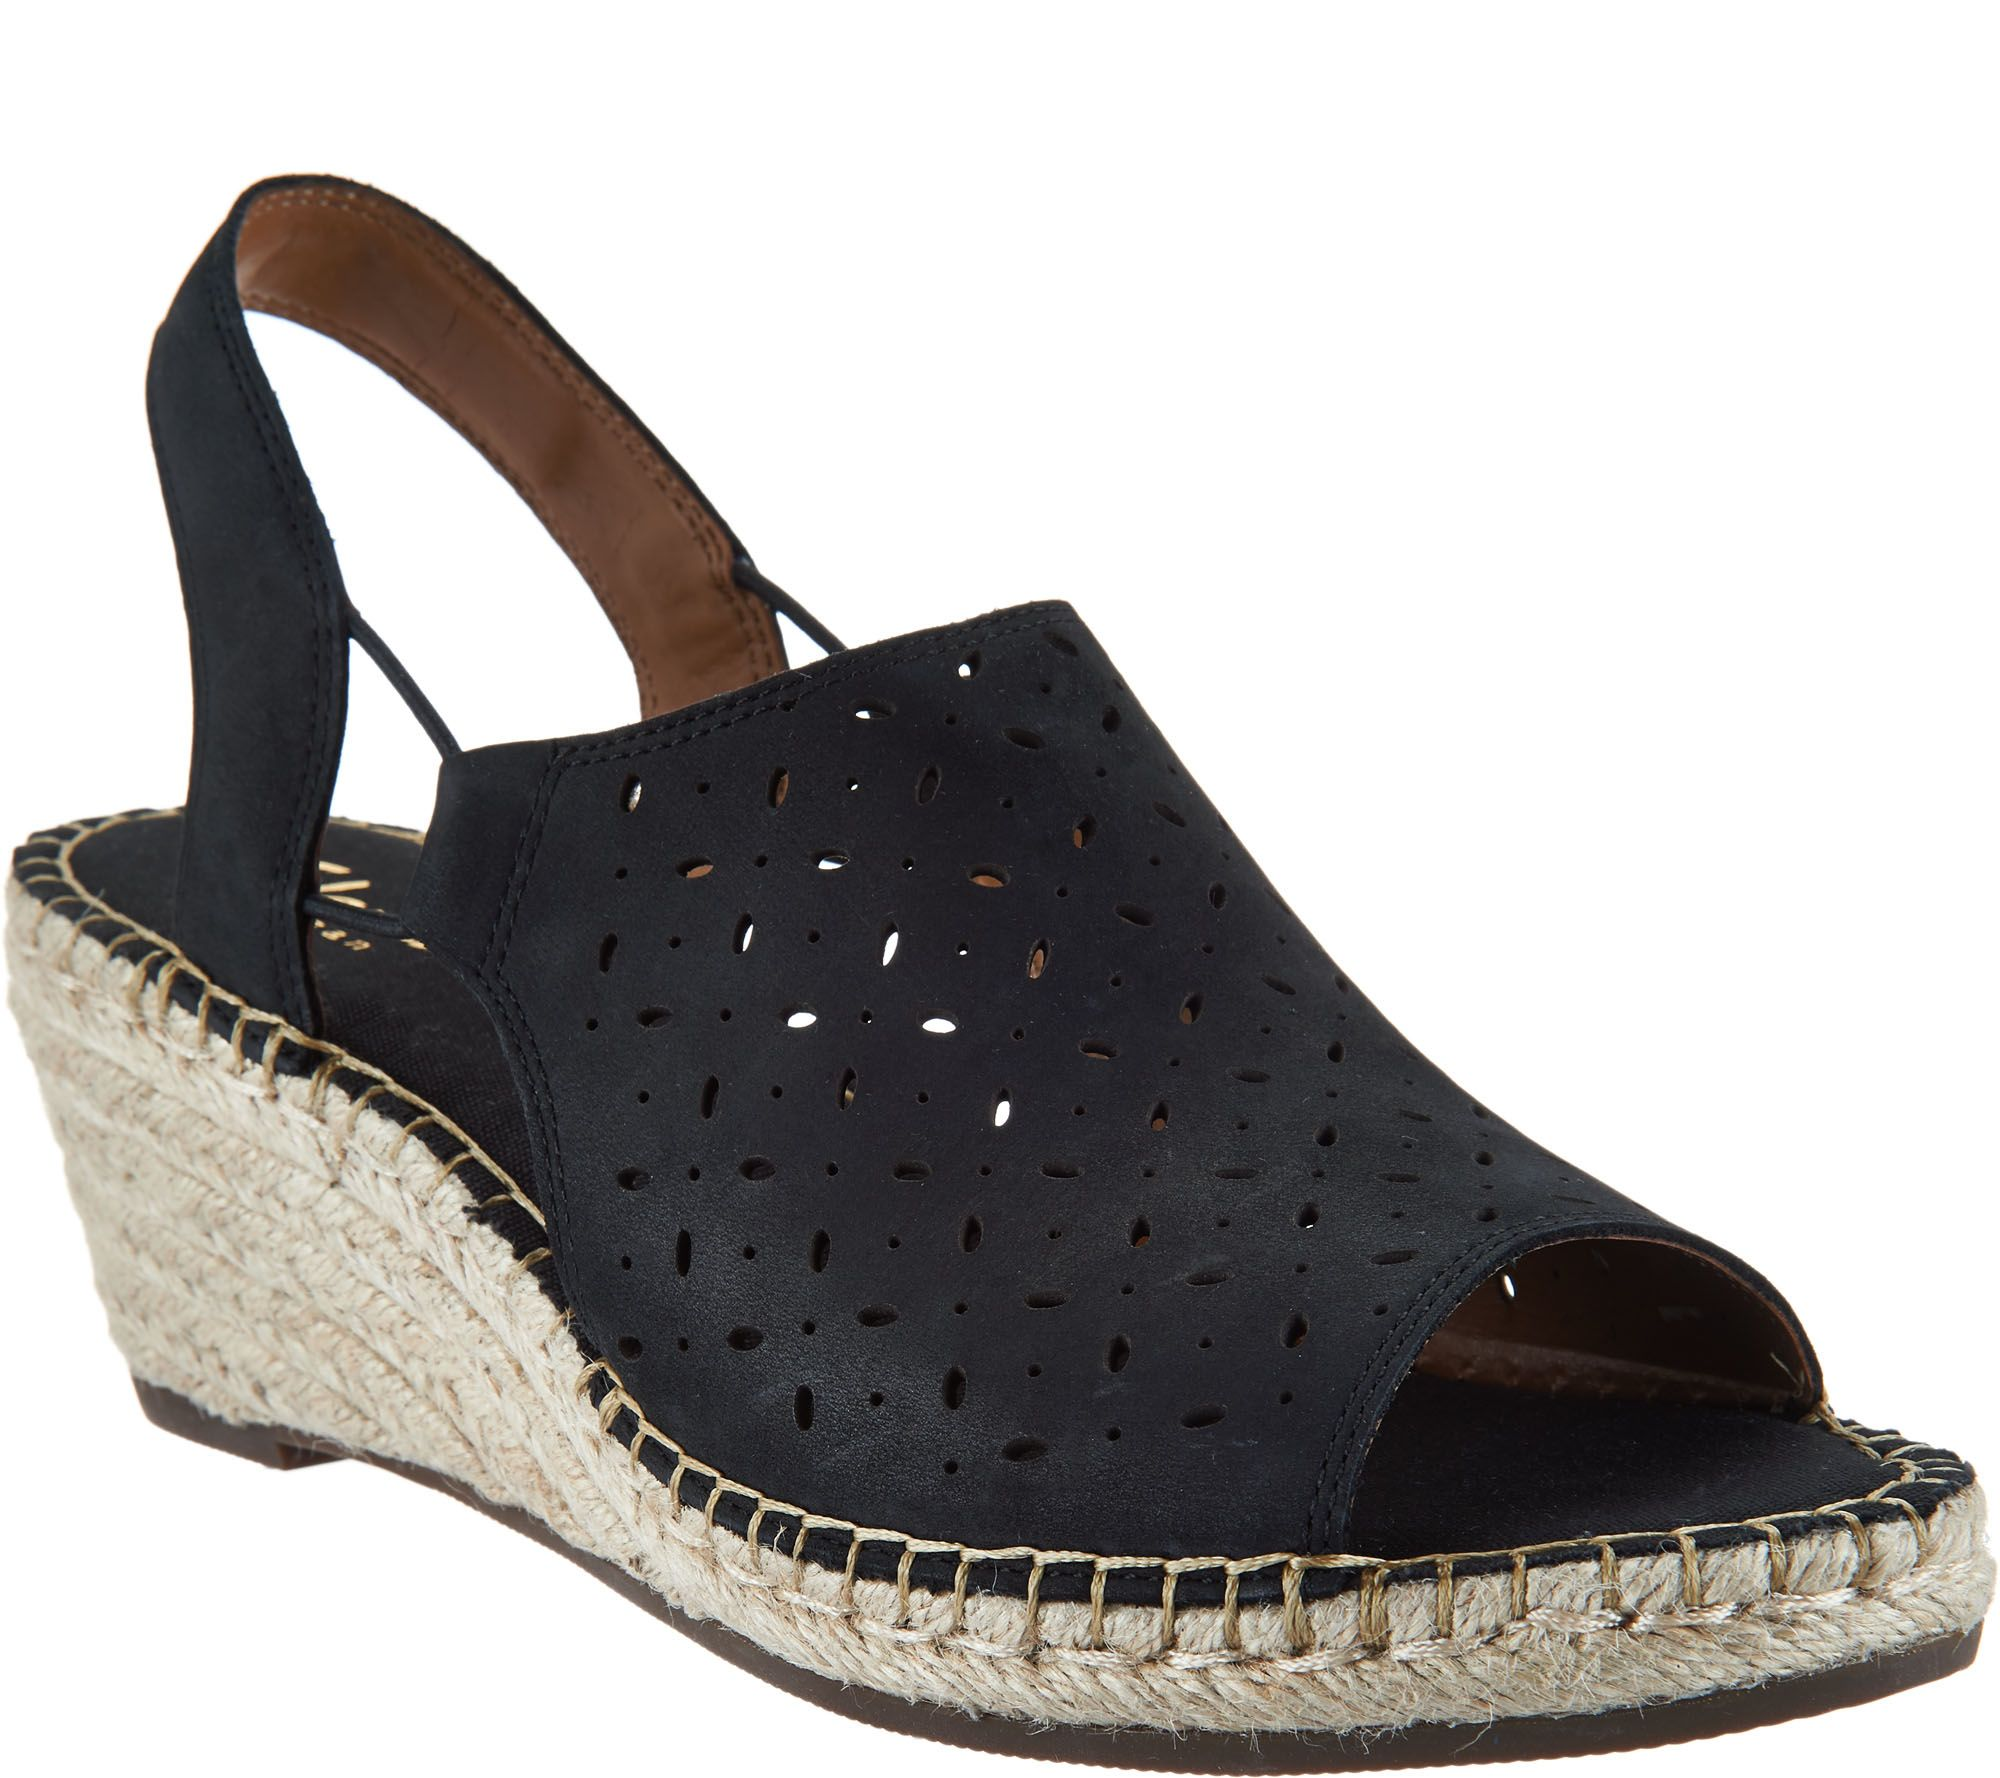 a3cca1379558 Clarks Artisan Leather Espadrille Wedge Sandals - Petrina Gail - Page 1 —  QVC.com